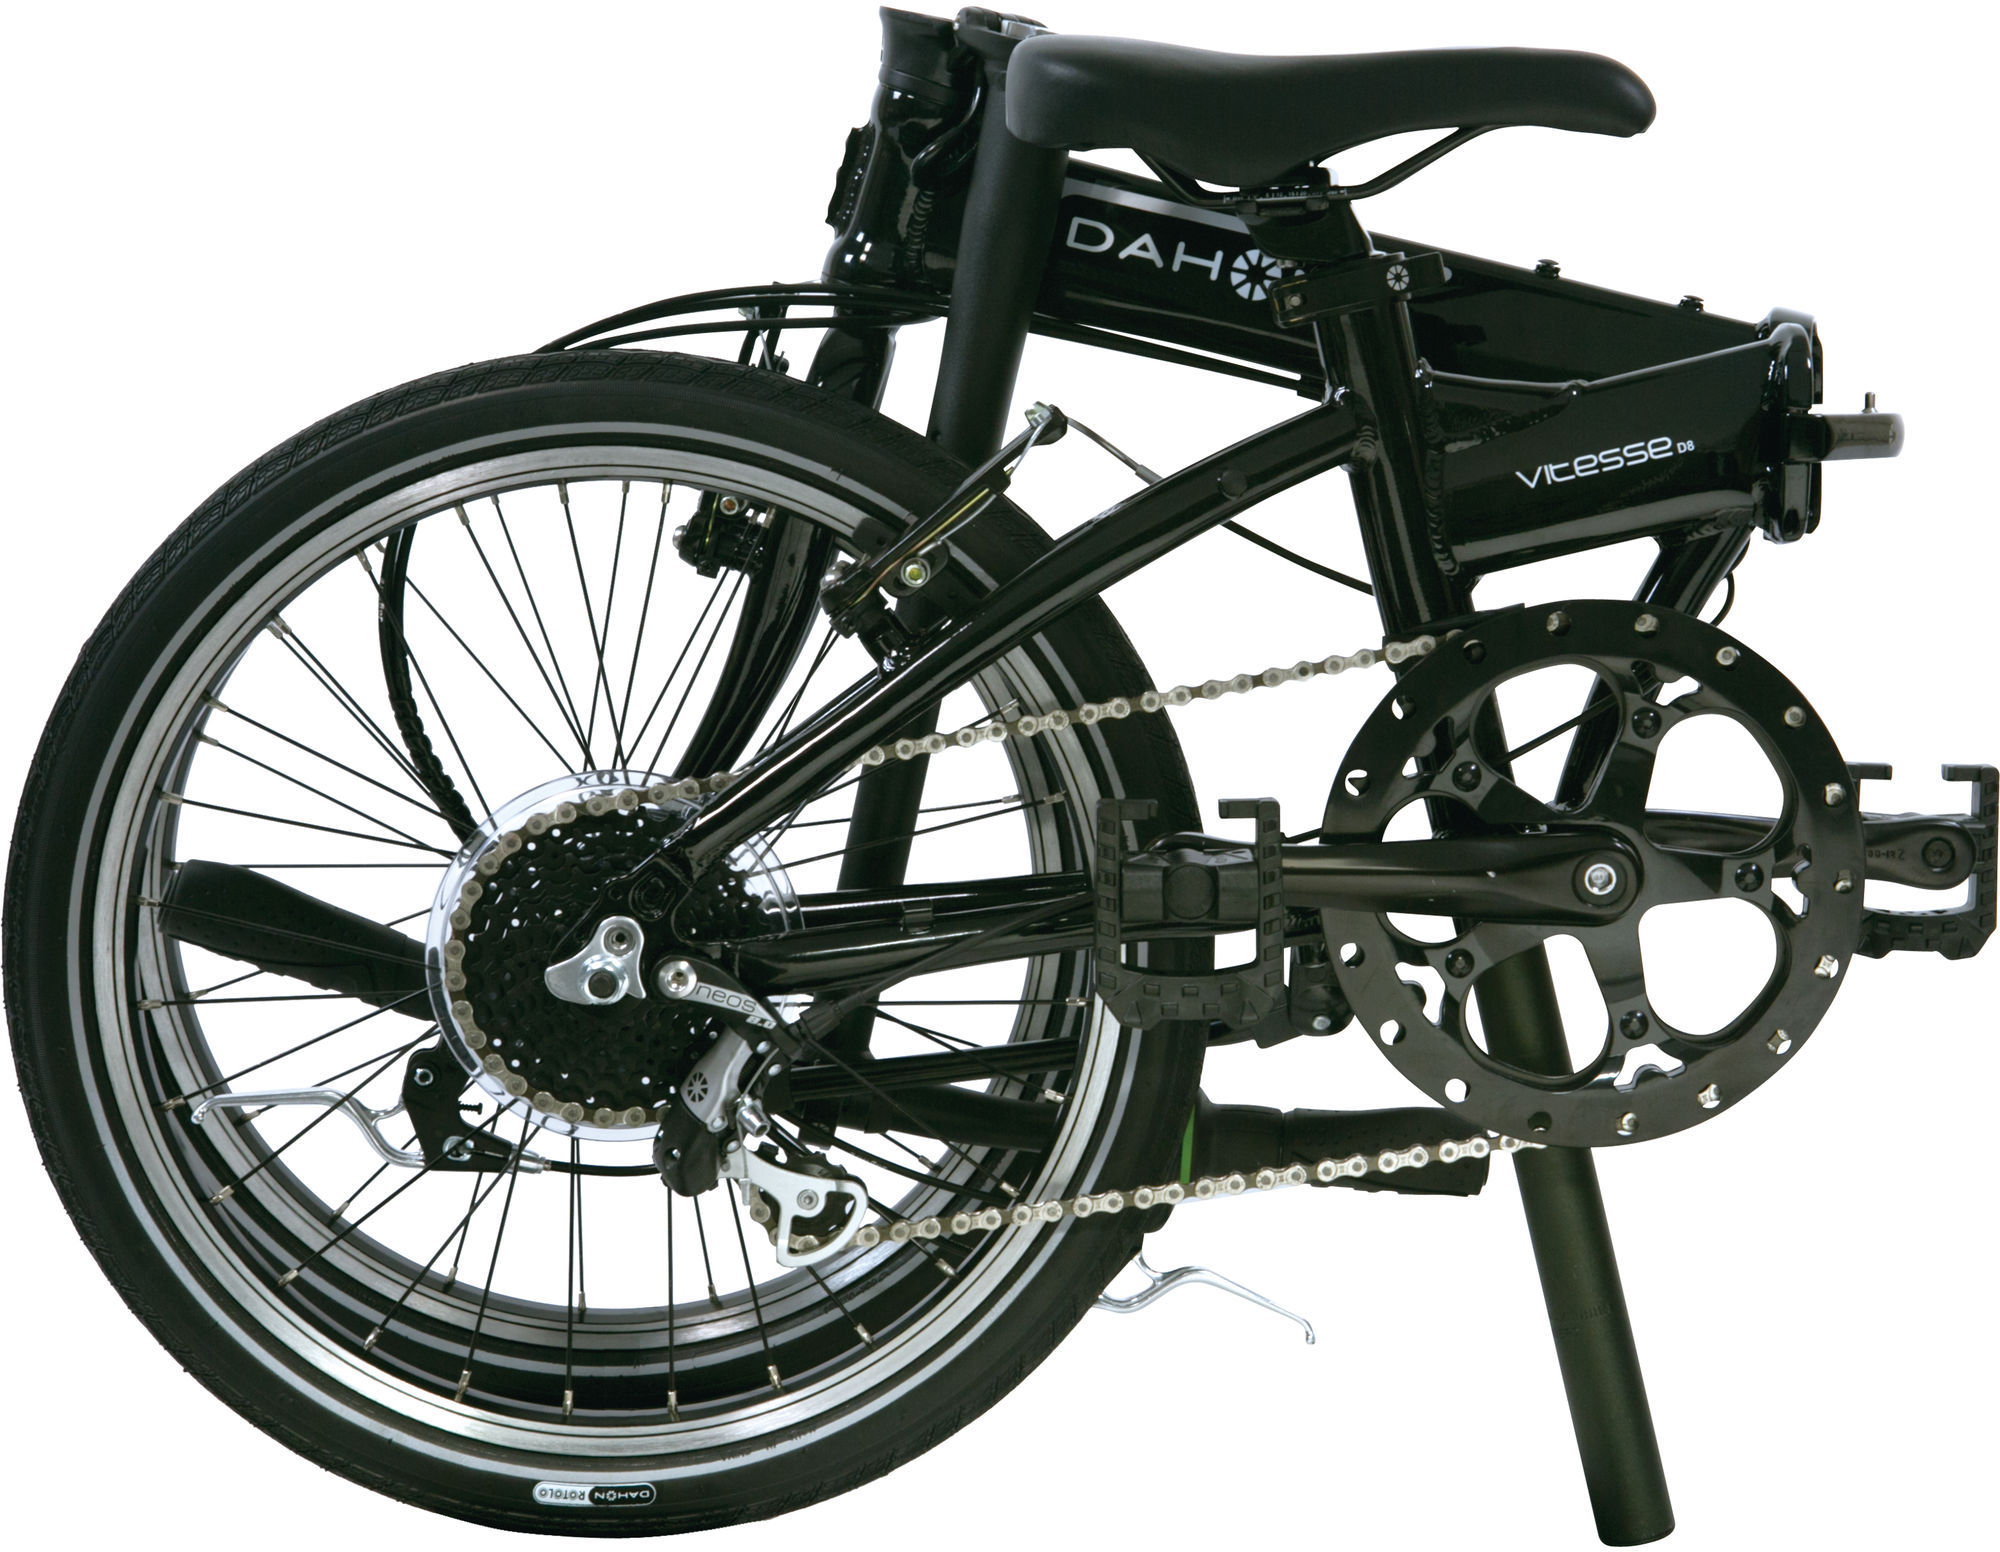 Dahon Vitesse D8 2014 review - The Bike List